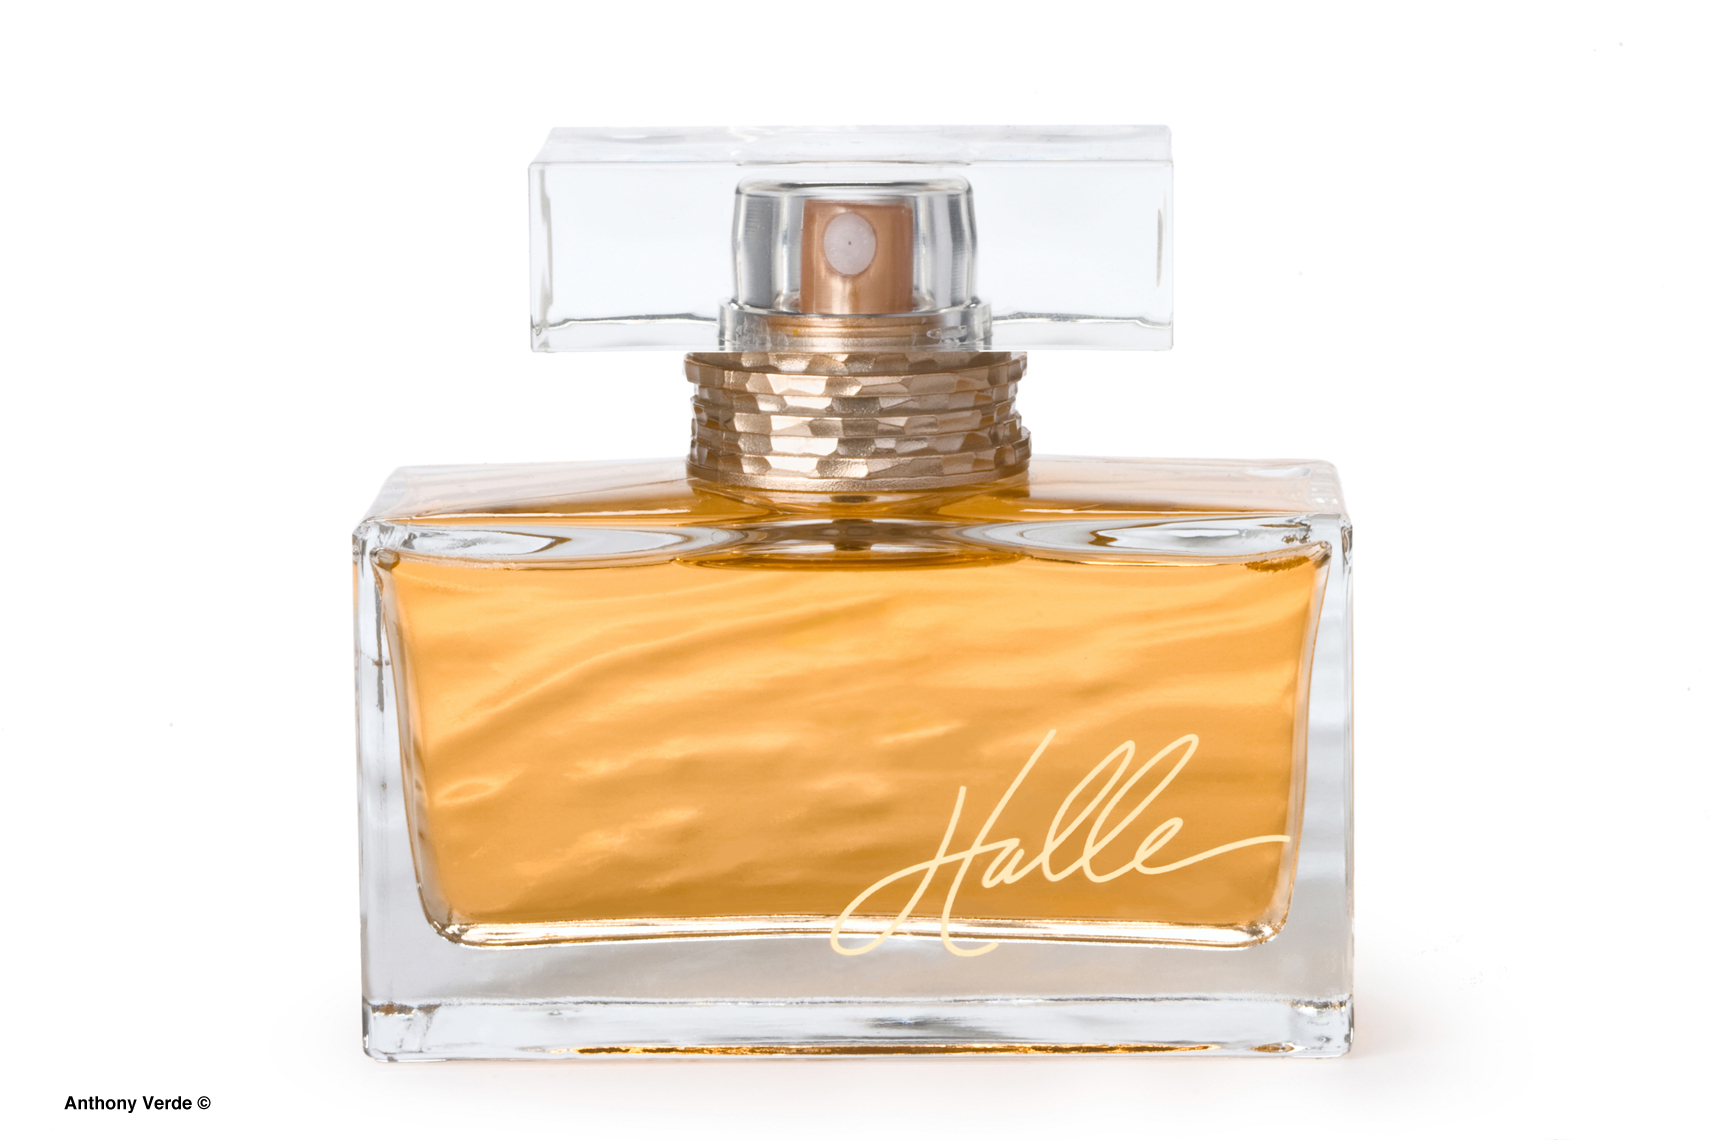 halle-perfume-product-photography